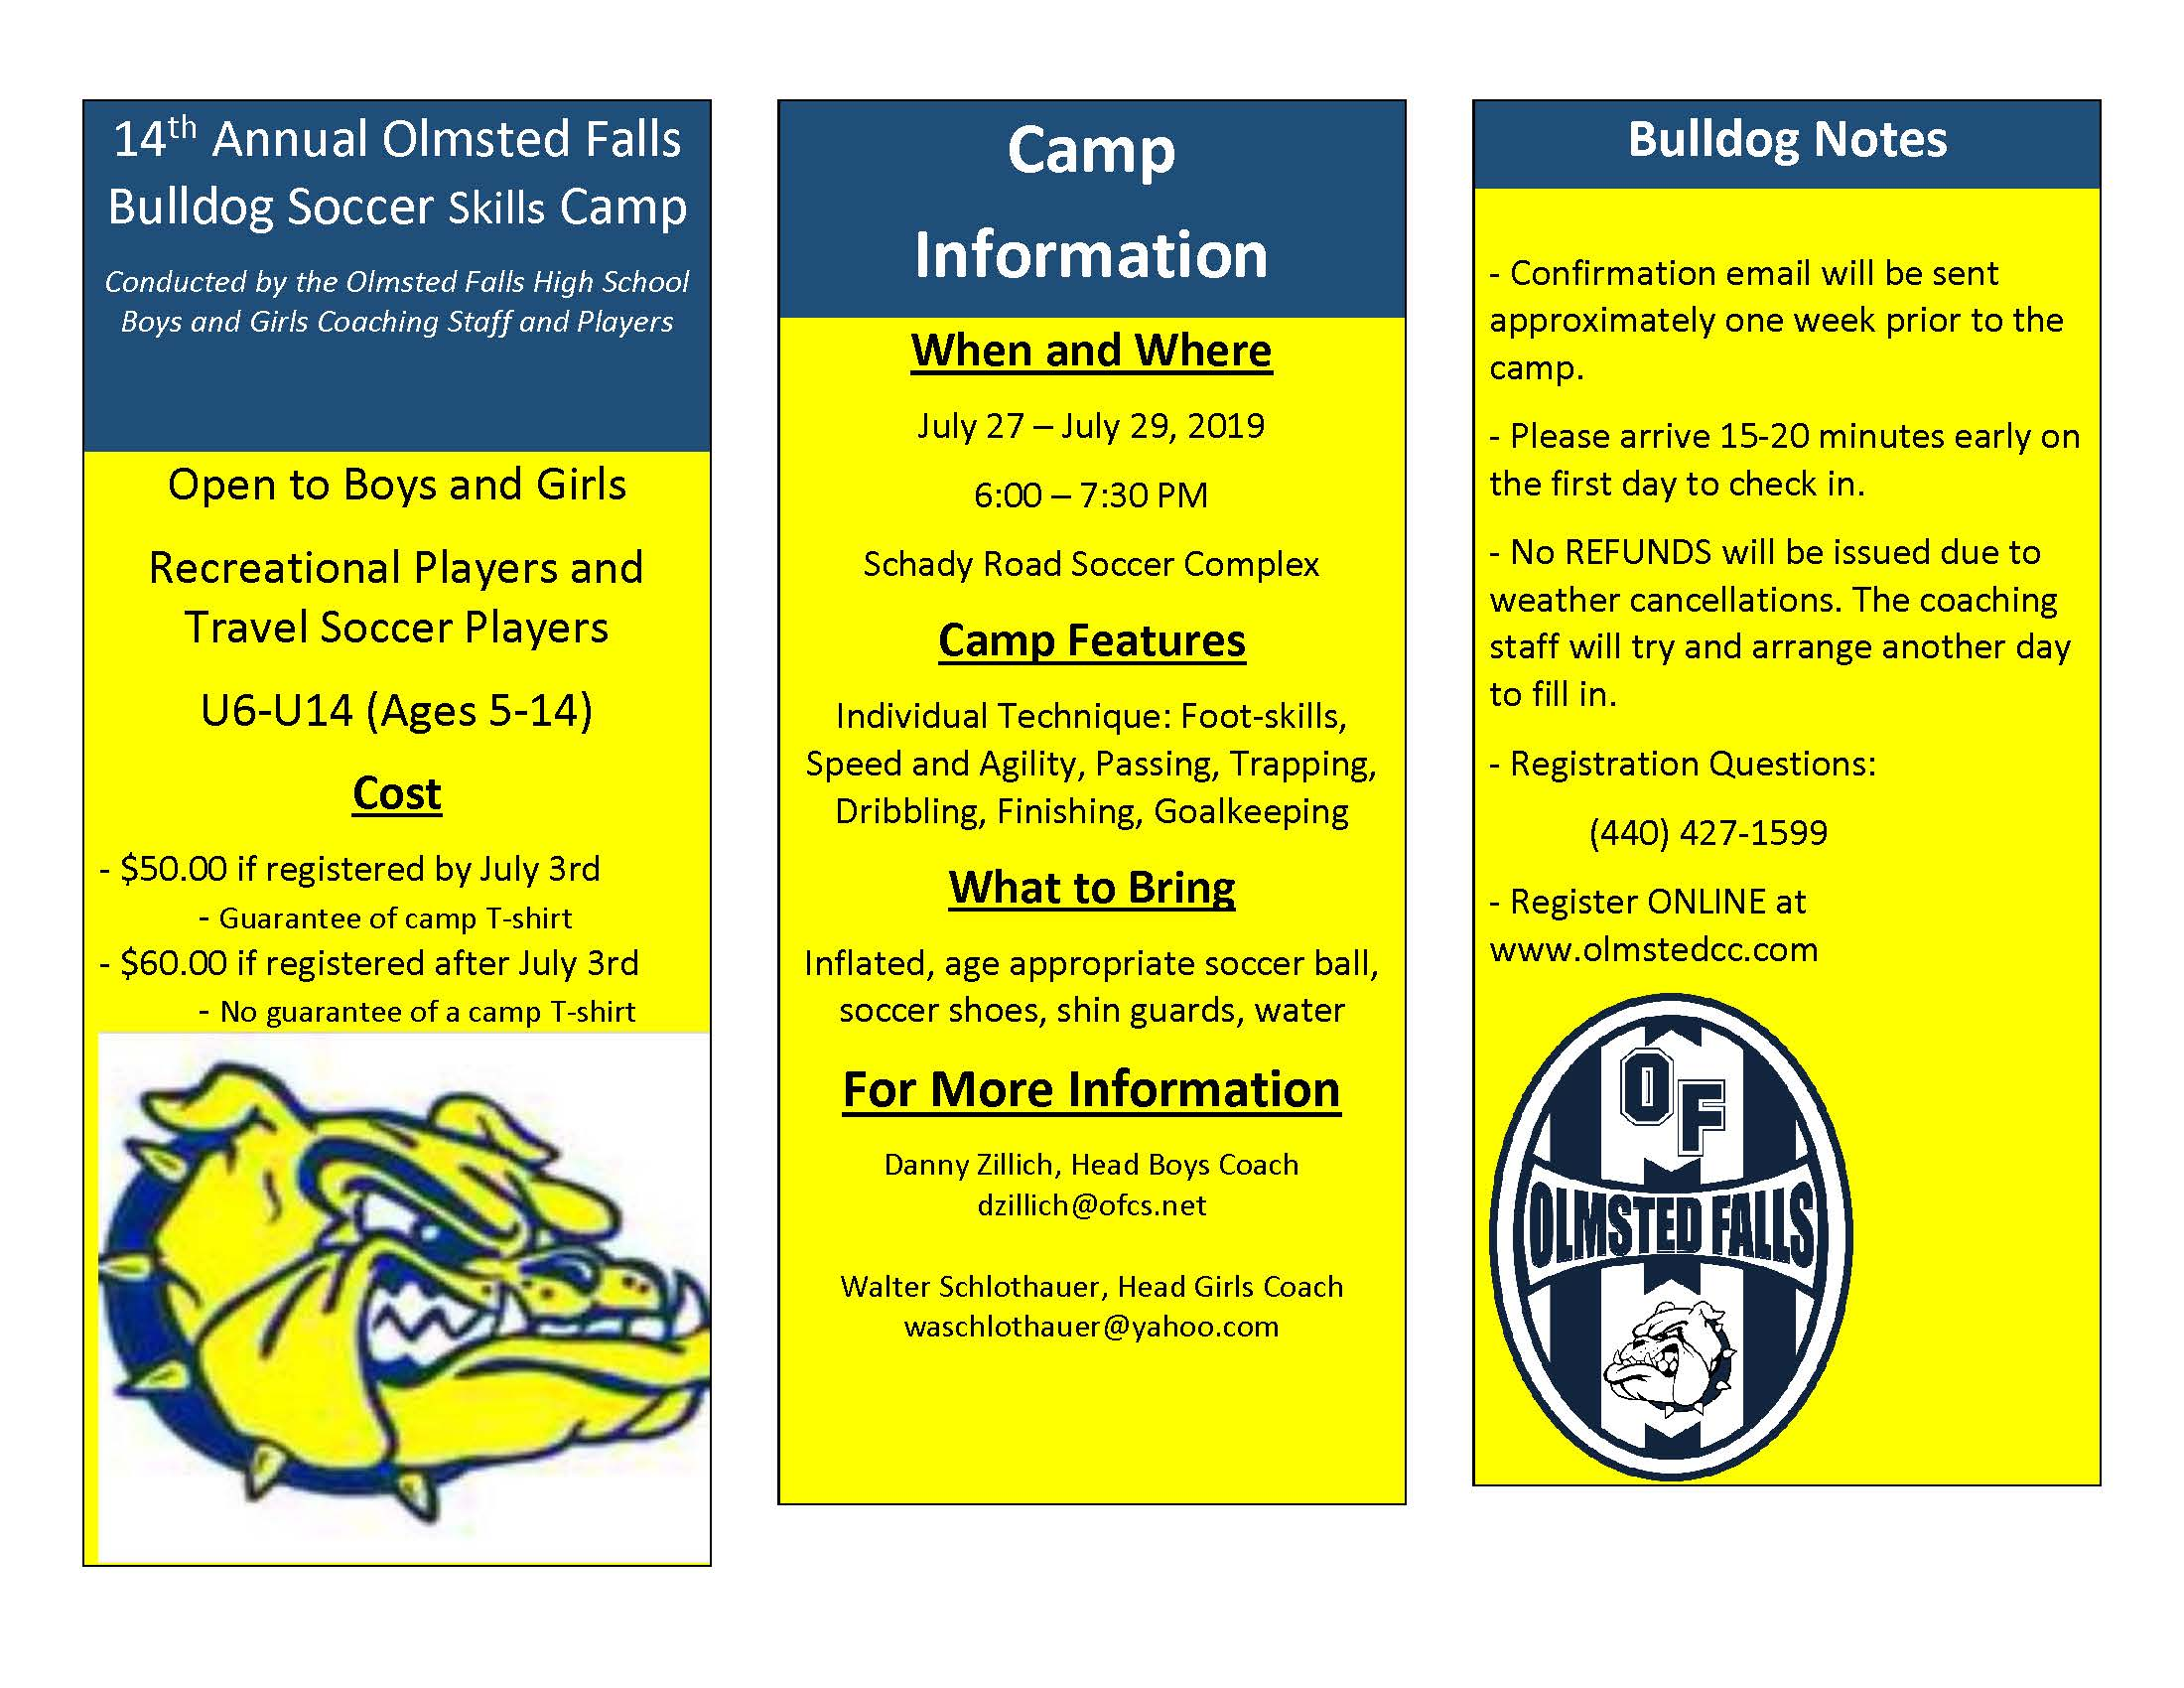 14th-Annual-Olmsted-Falls-Bulldog-Soccer-Skills-Camp